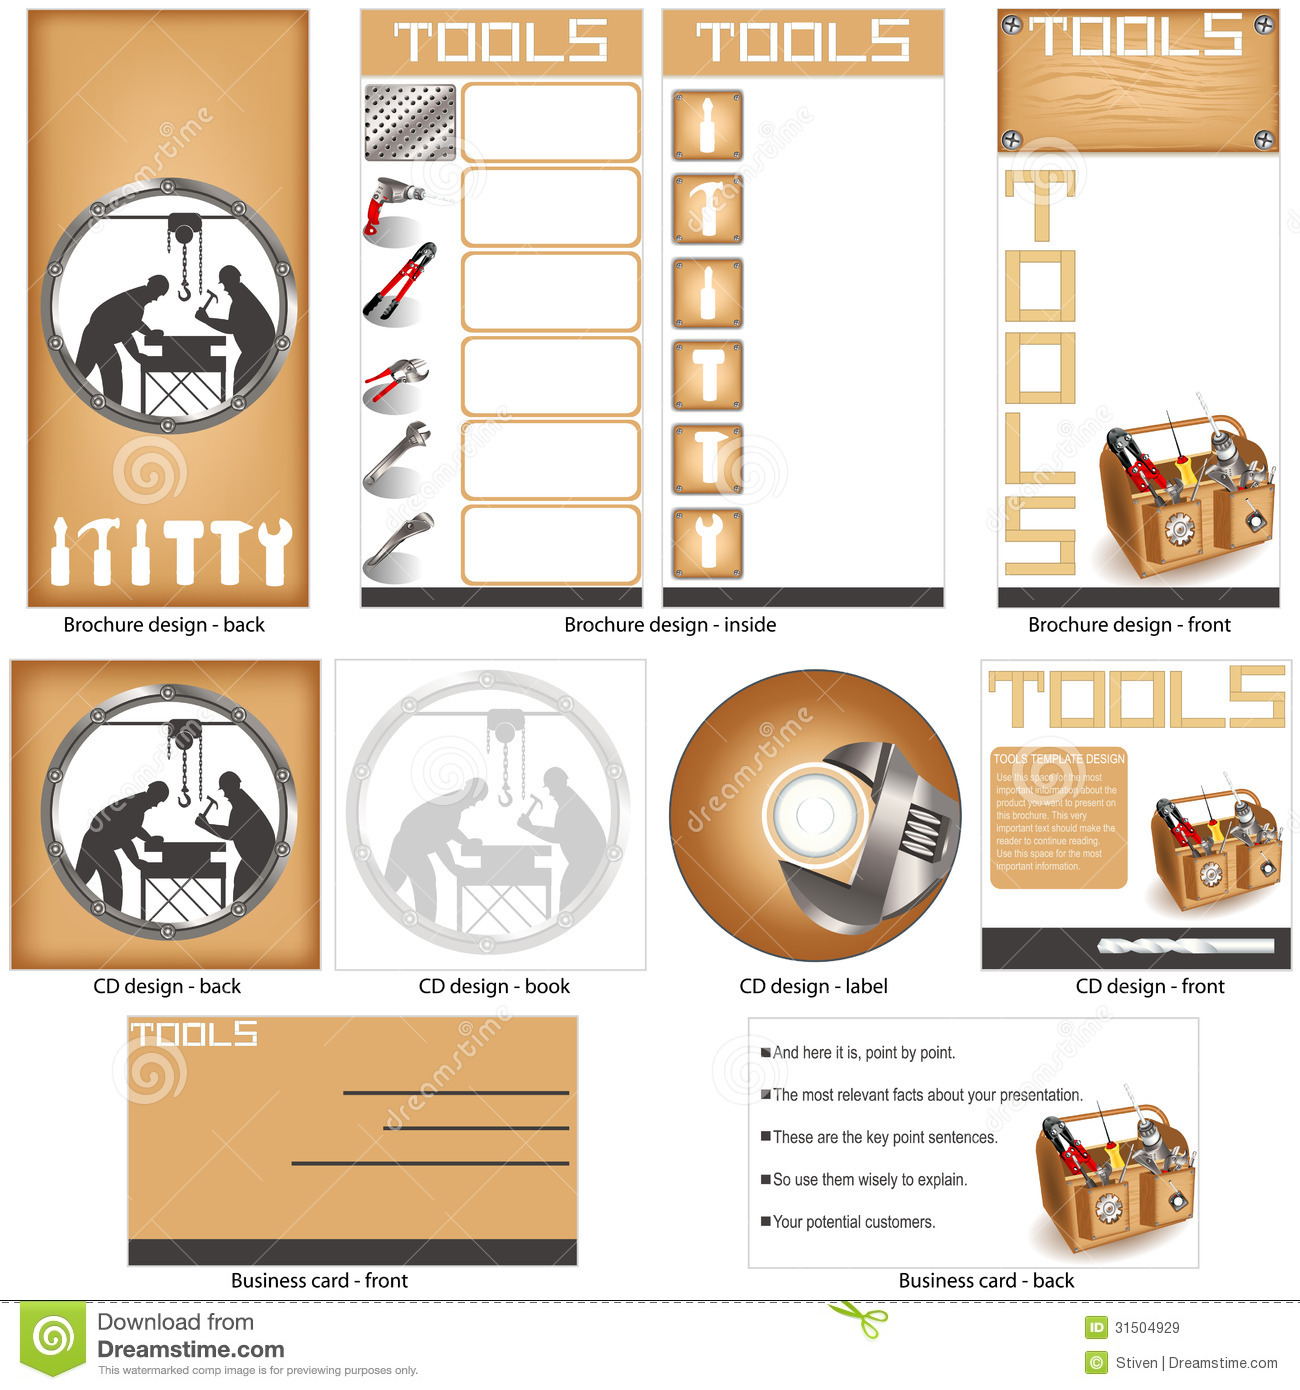 Tools template design royalty free stock images image for Brochure design tools